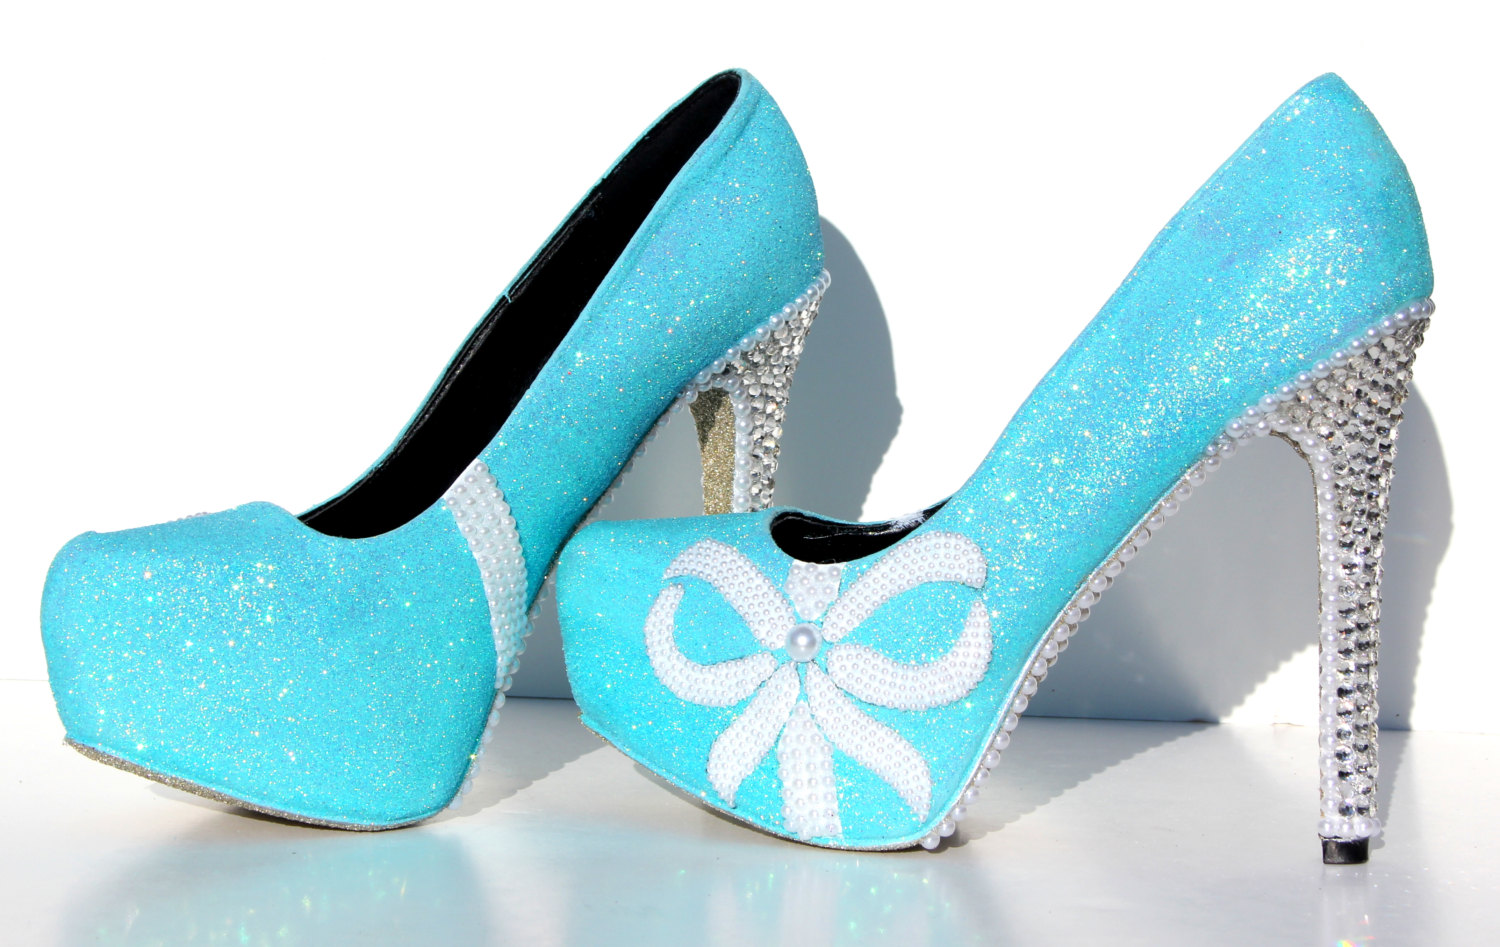 Tiffany blue glitter heels with swarovski crystals and pearls on il fullxfull534622291 92ea small junglespirit Image collections